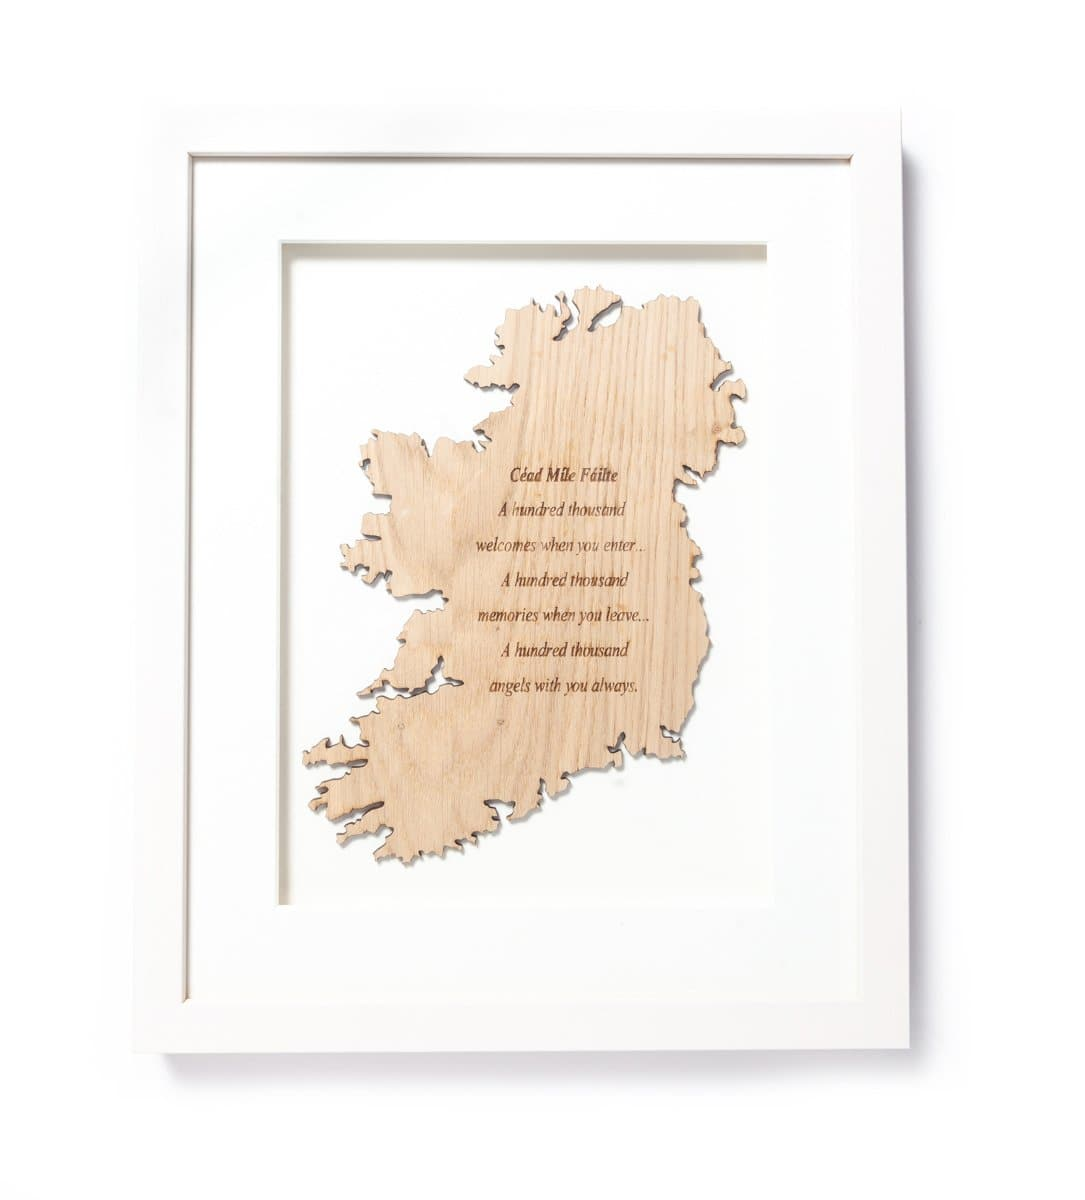 Cead Mile Failte Framed Wall Decor Made in Ireland Traditional Irish Welcome Irish Greeting Unique Gift Crafted in Co. Meath